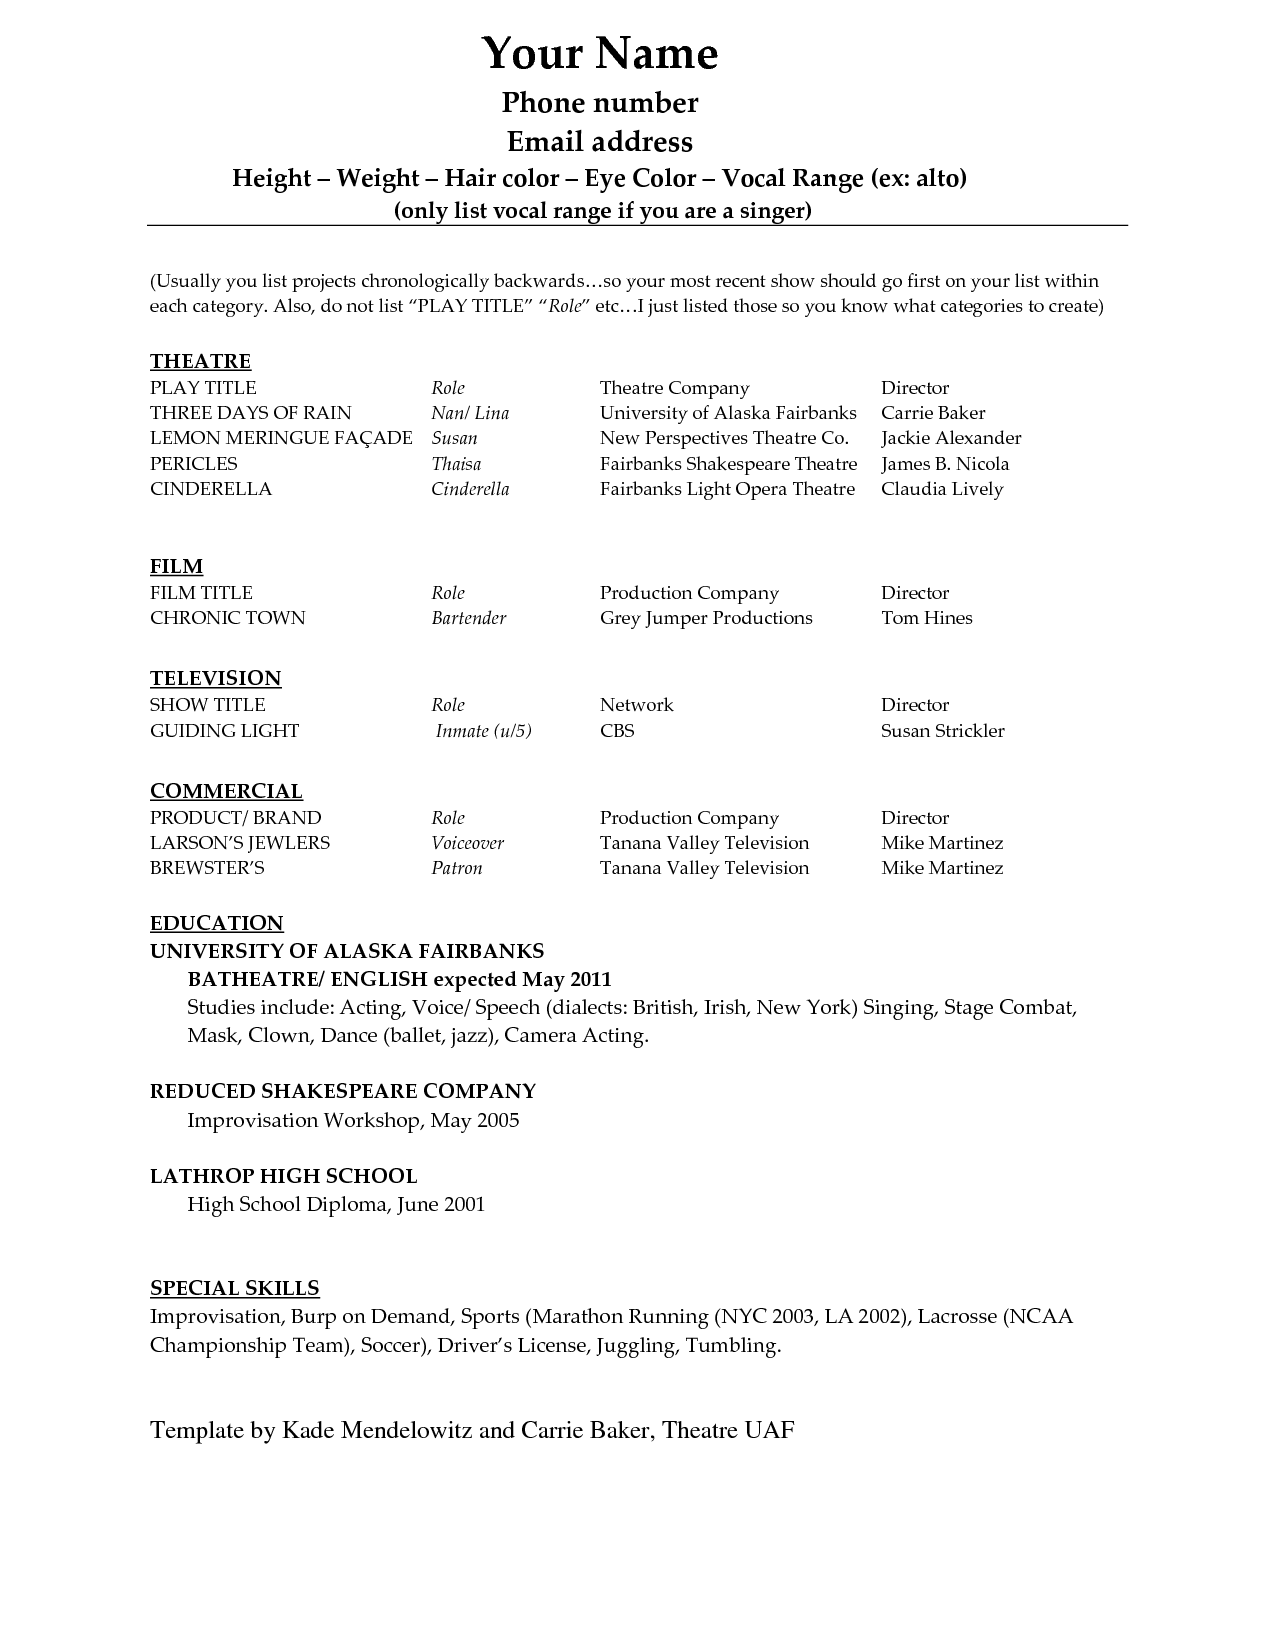 Microsoft Office Resume Templates Free Download Classy Acting Resume Template Download Free  Httpwwwresumecareer